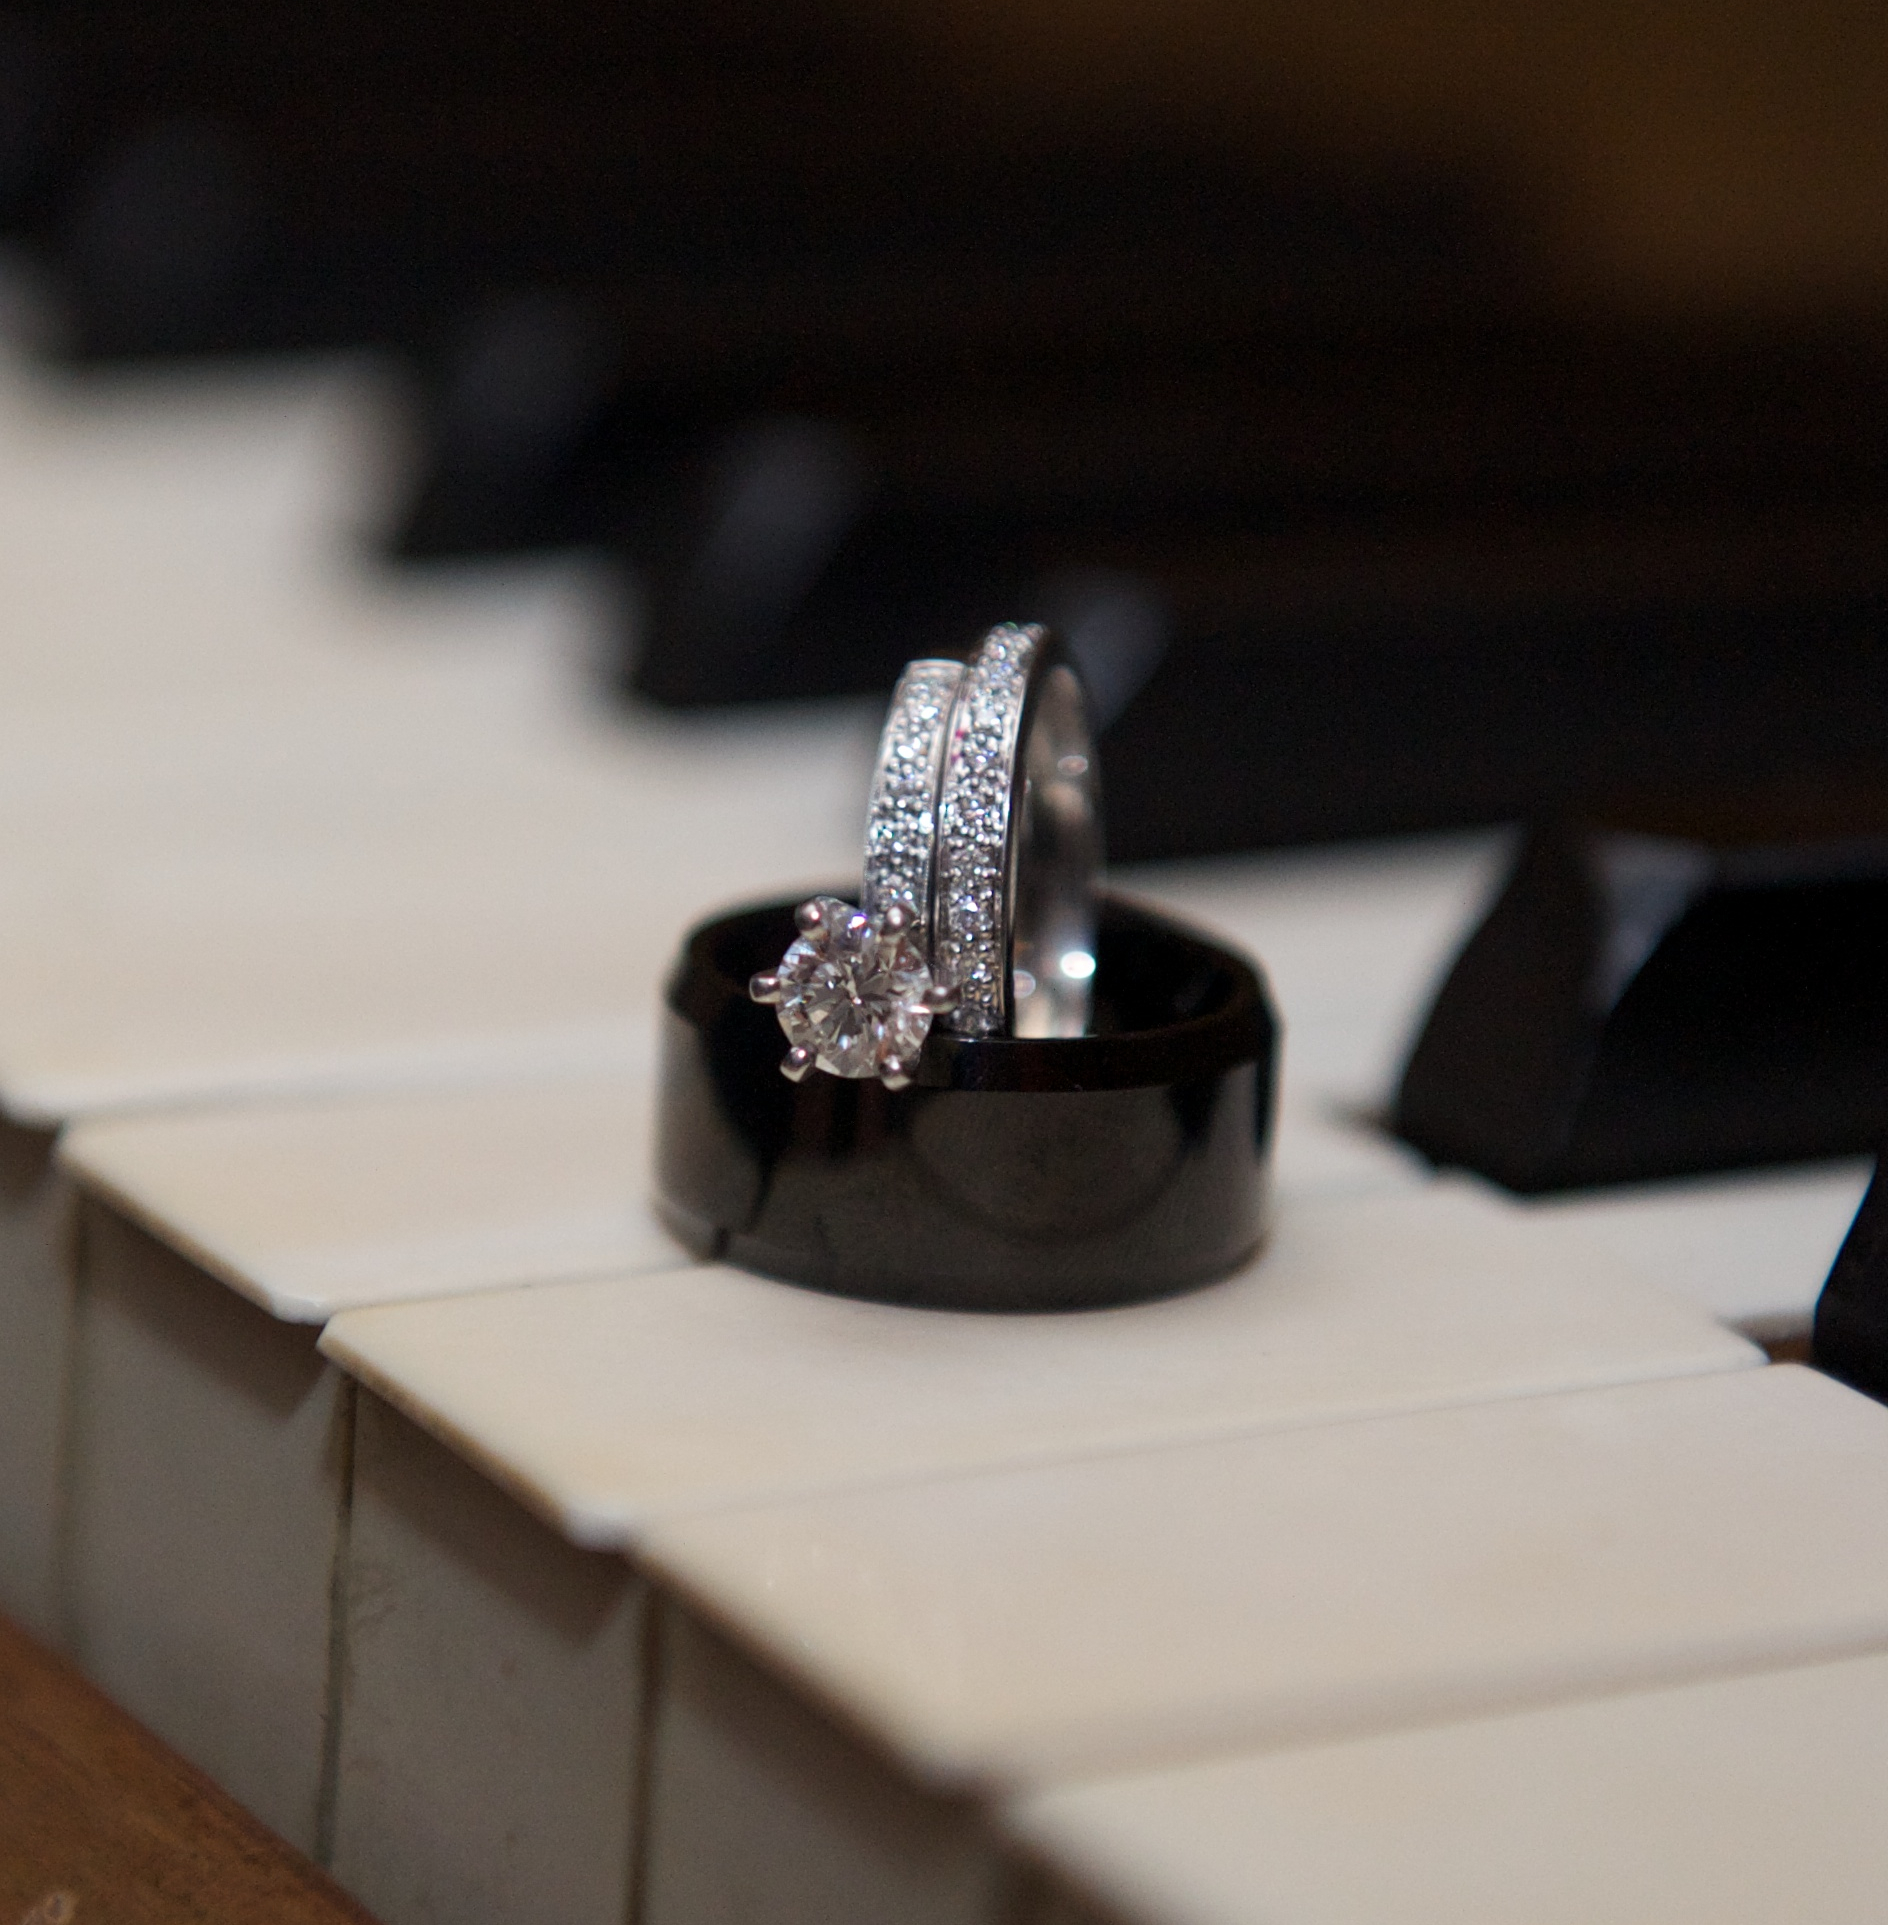 Image 2 of Reader's Rings II; Engagement Ring Photos Submitted by You!